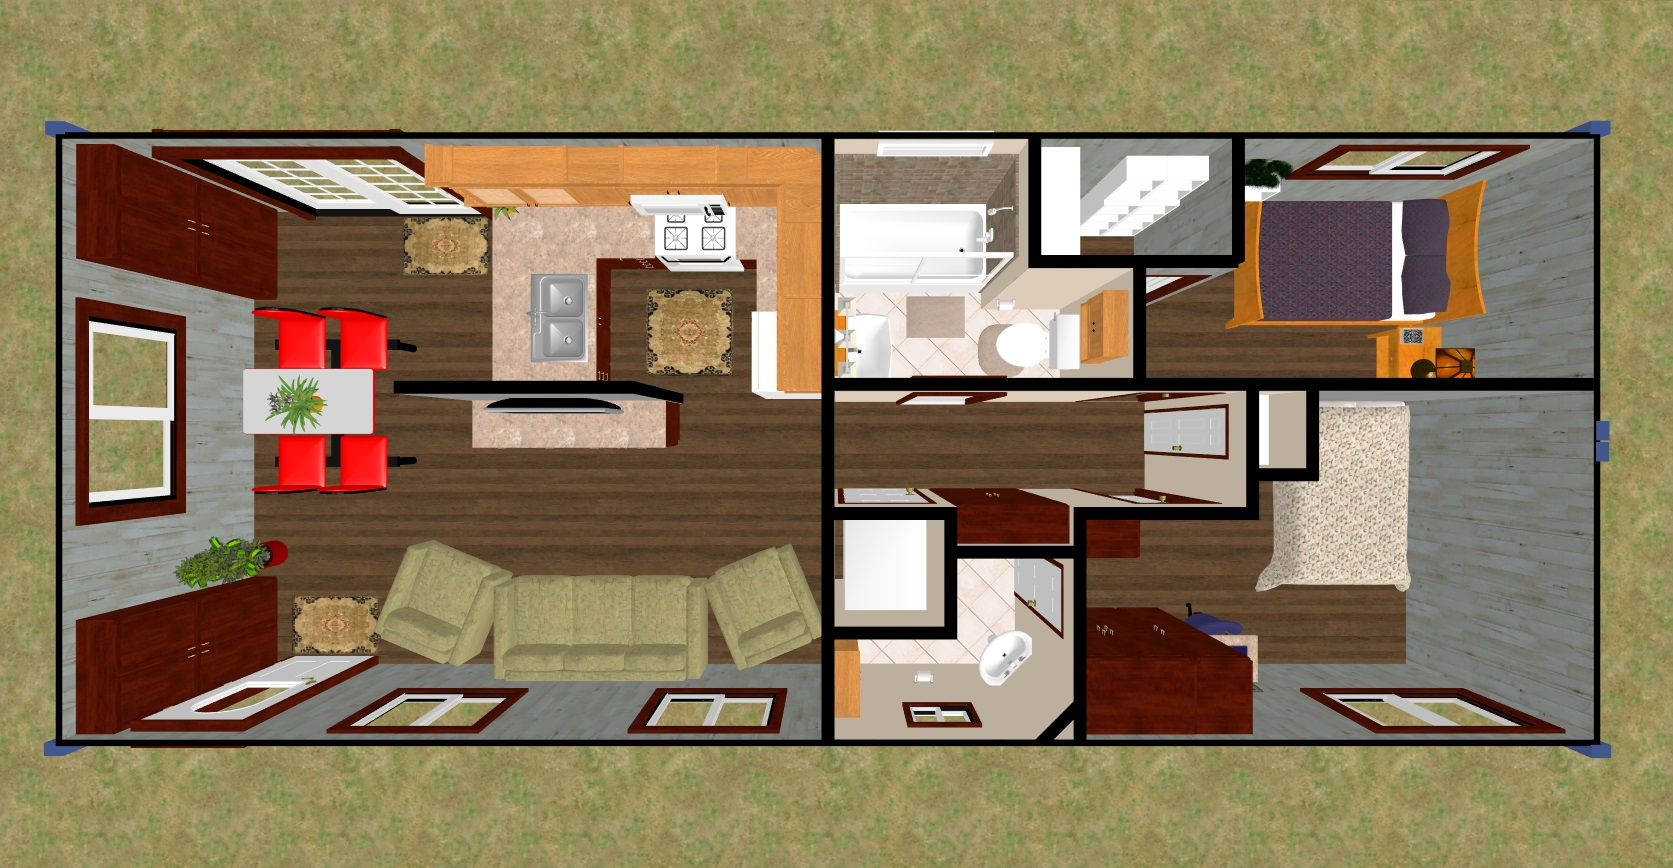 3d top view of our 640 sq ft daybreak floor plan using 2 x 40